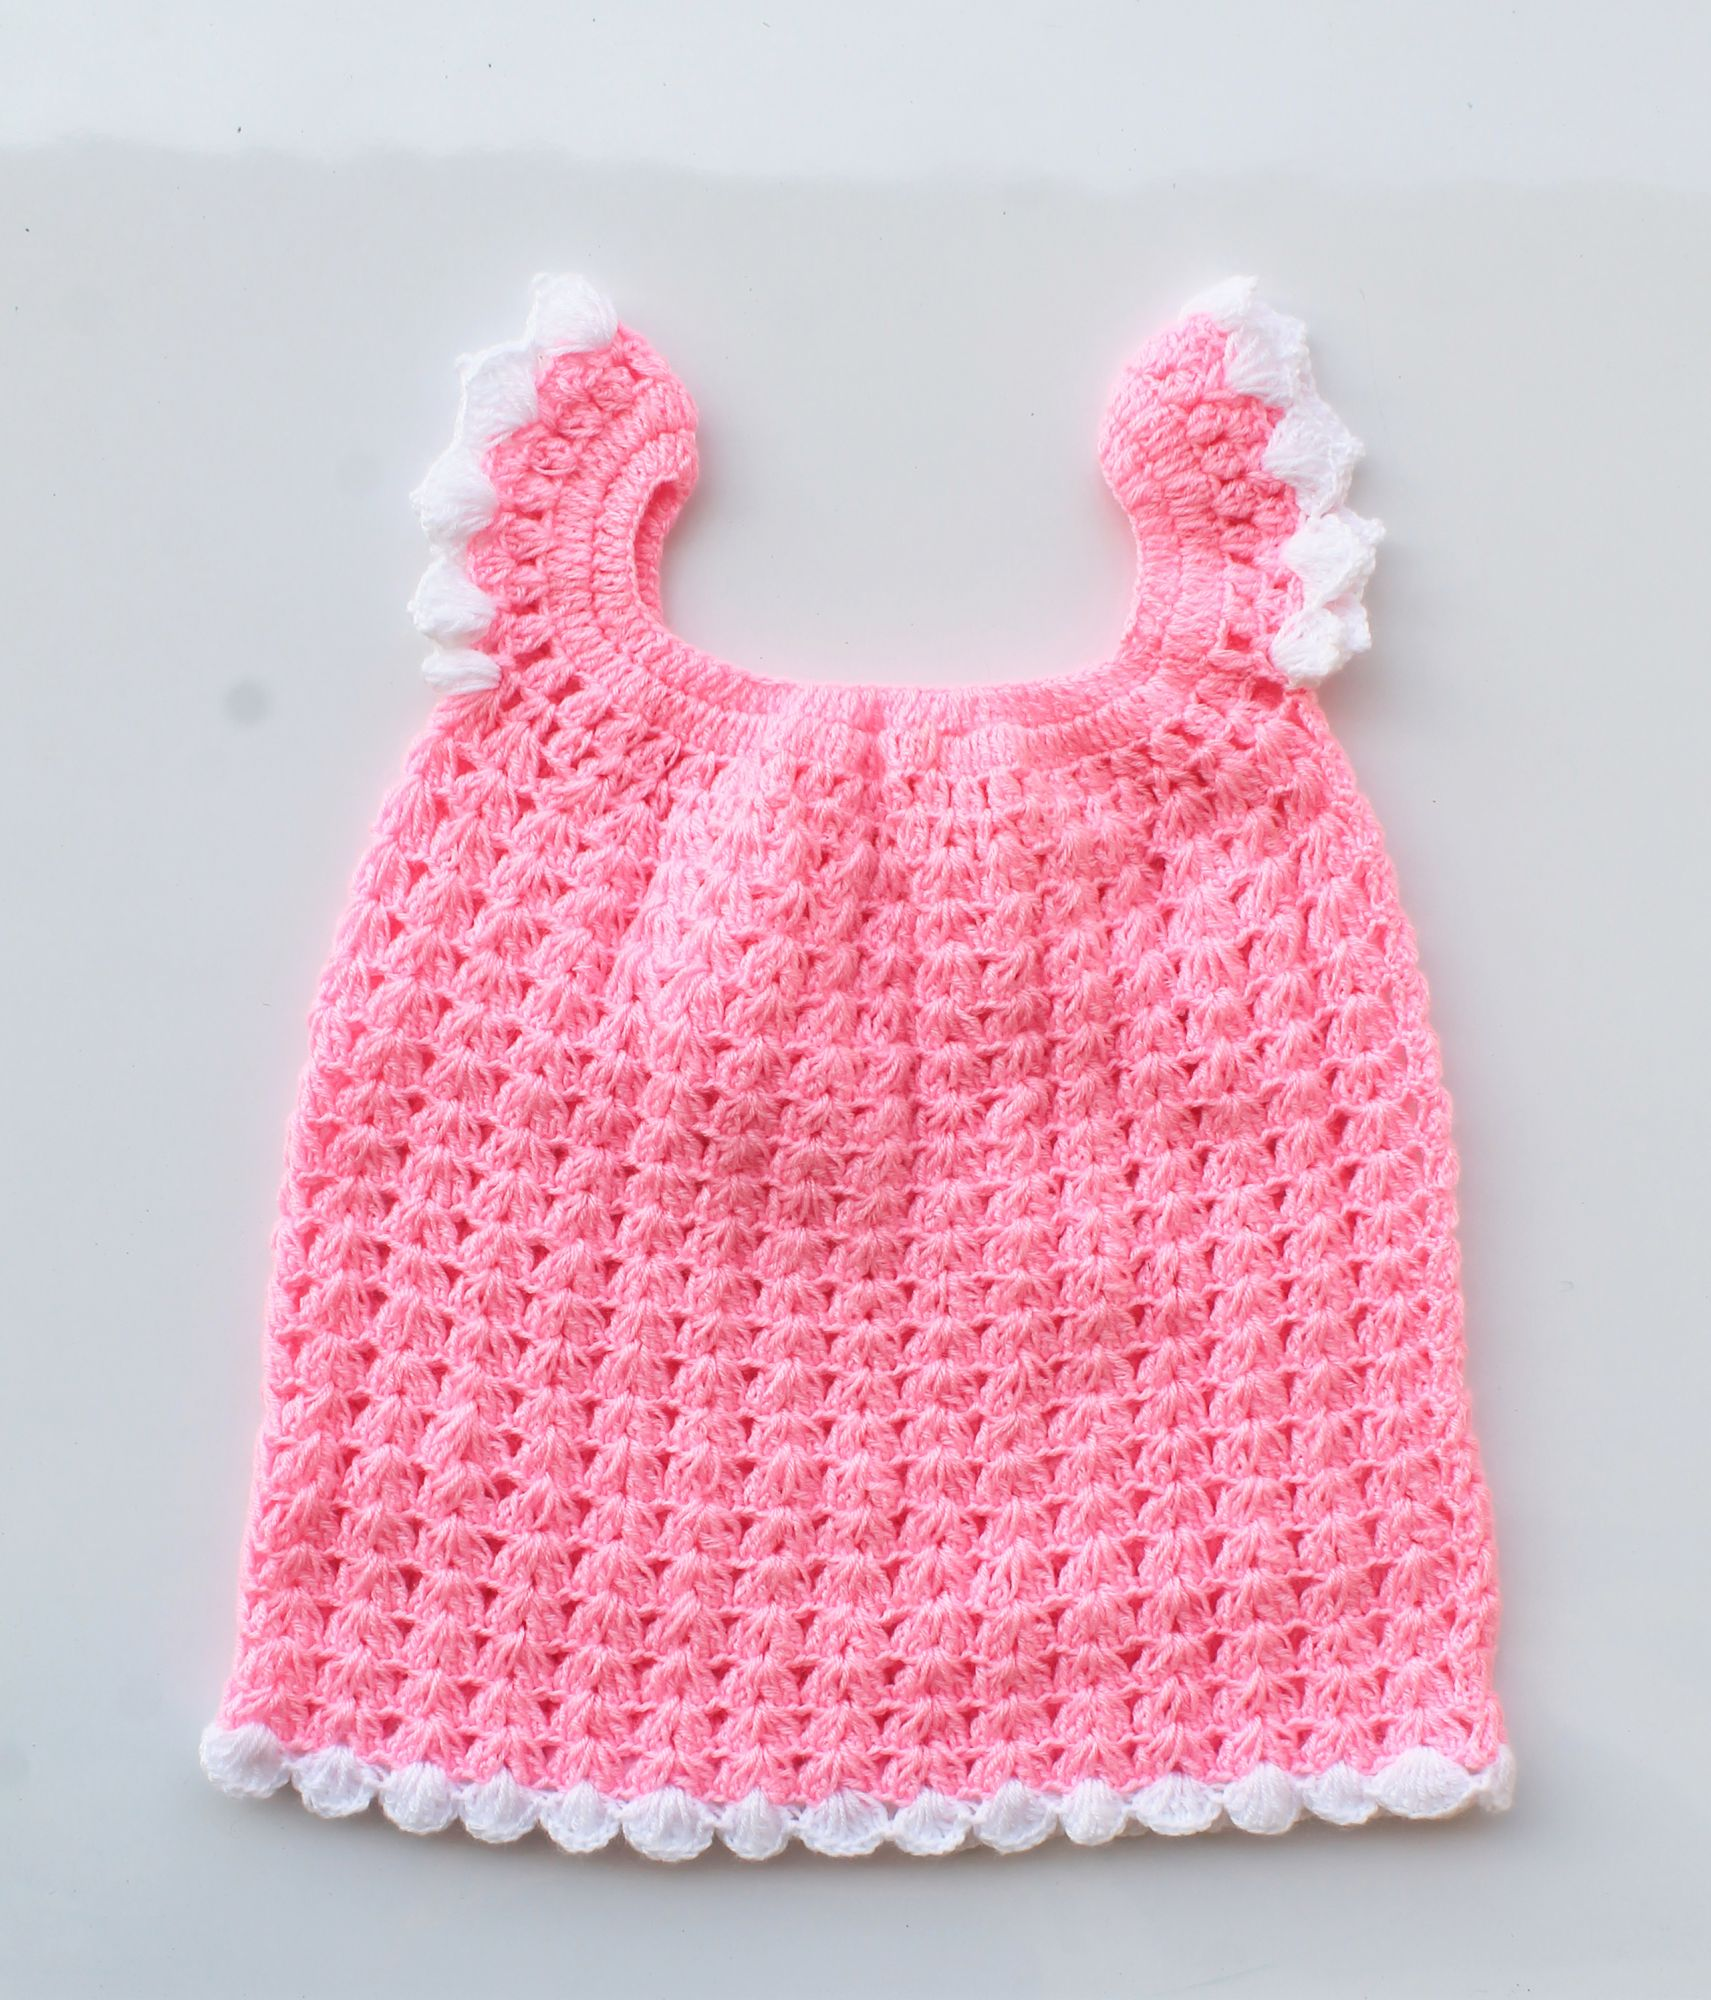 Baby Pink Woolen Frock with Headband